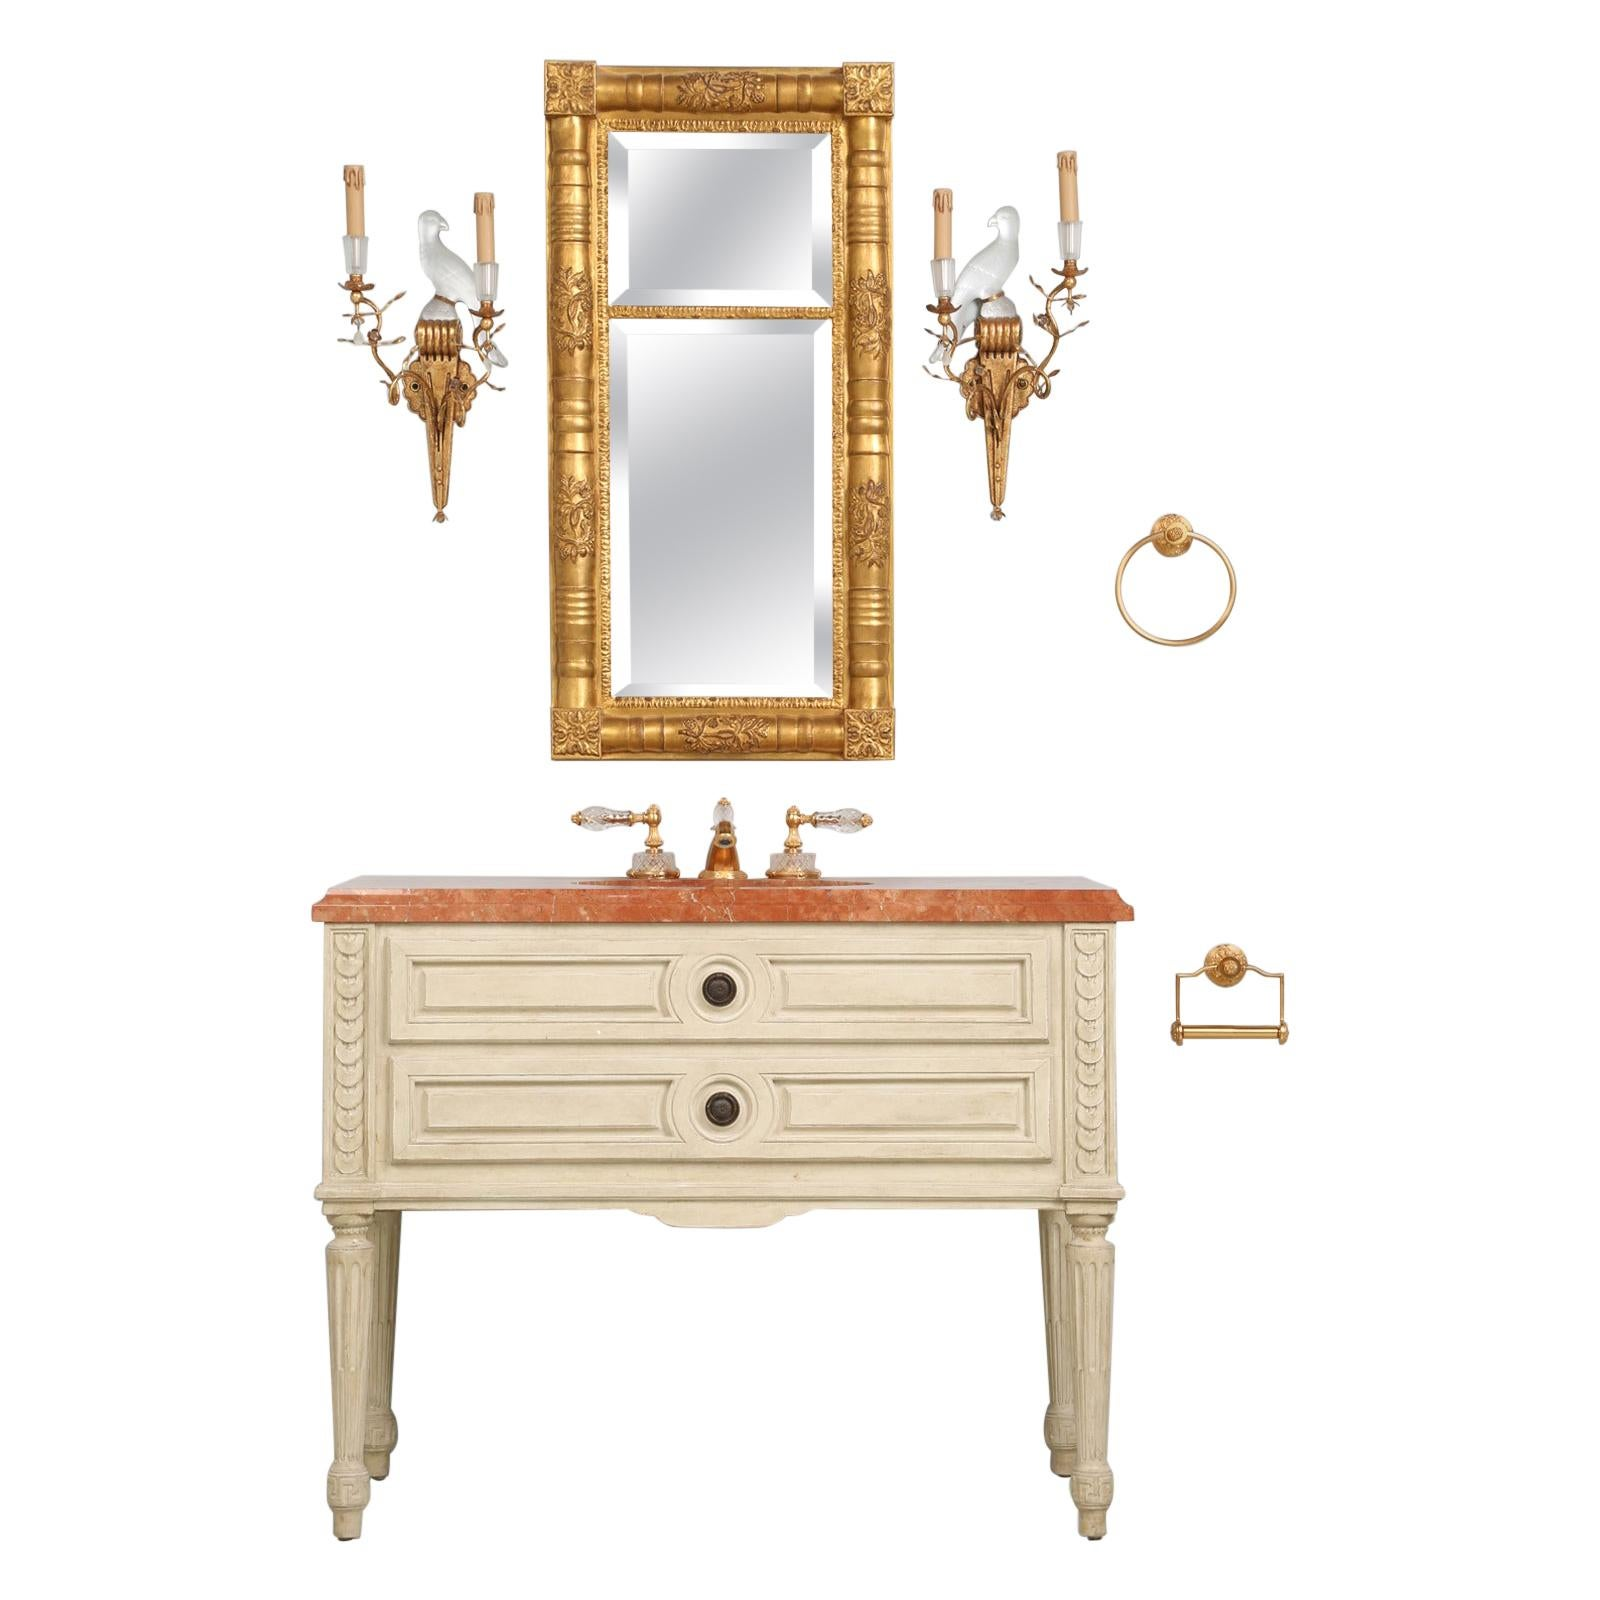 Sherle Wagner French Louis XVI Style Bathroom Vanity with all the Accessories